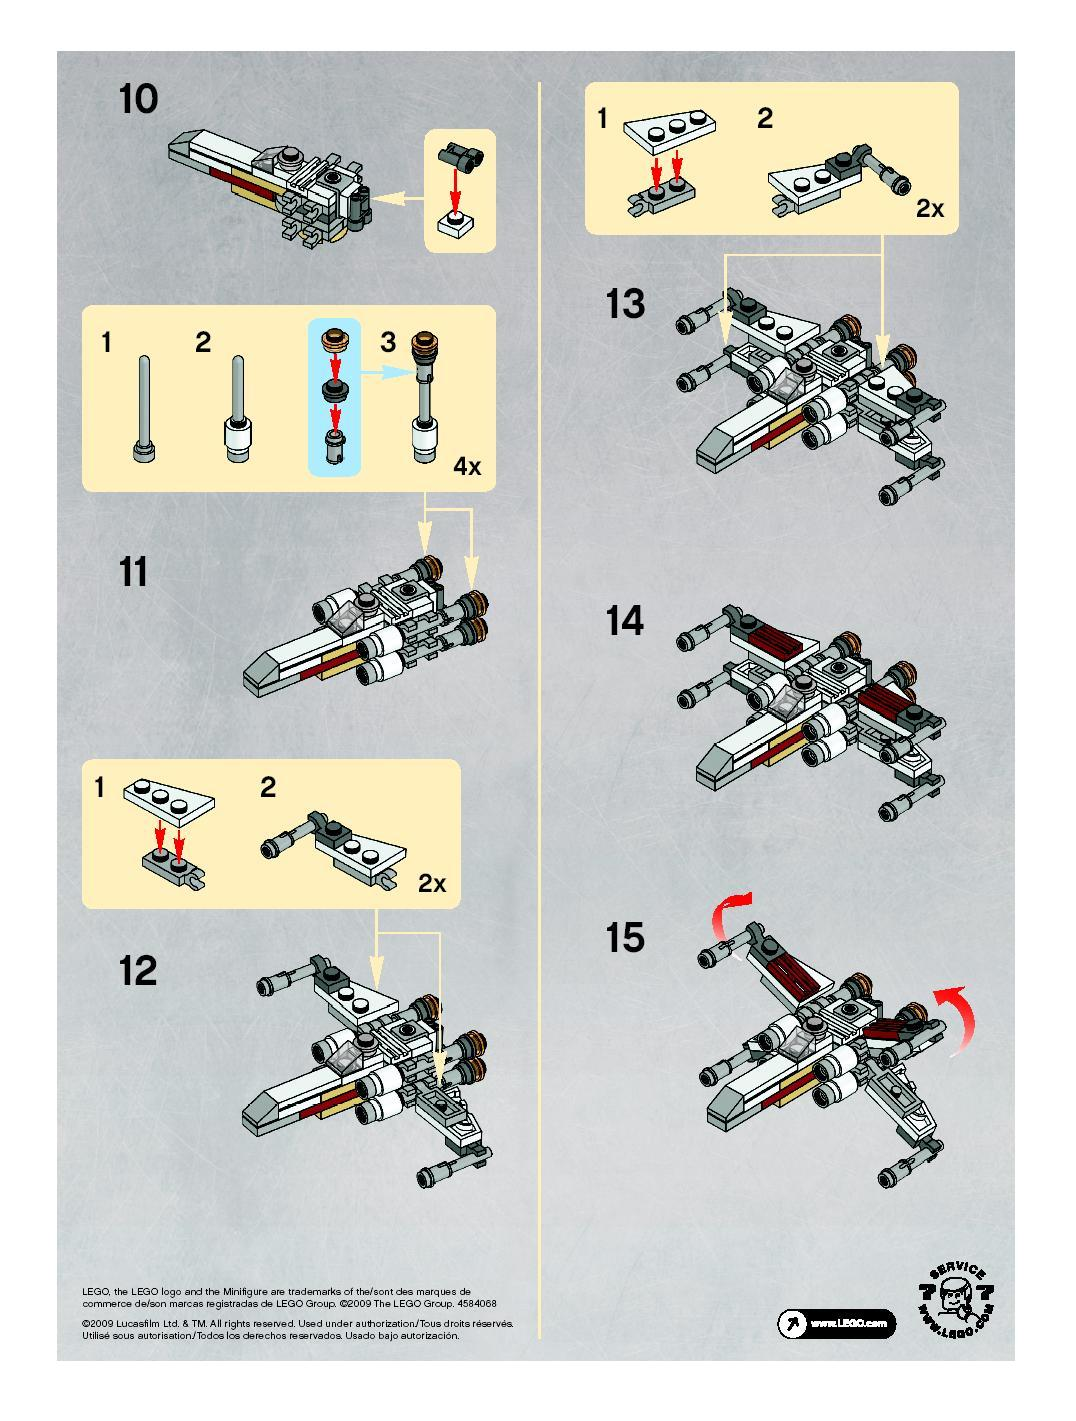 instructions for 30051 1 x wing fighter bricks argz com rh bricks argz com Star Wars Legos Full Manuals LEGO Star Wars That Is Able to Fire Red Tank Sticks